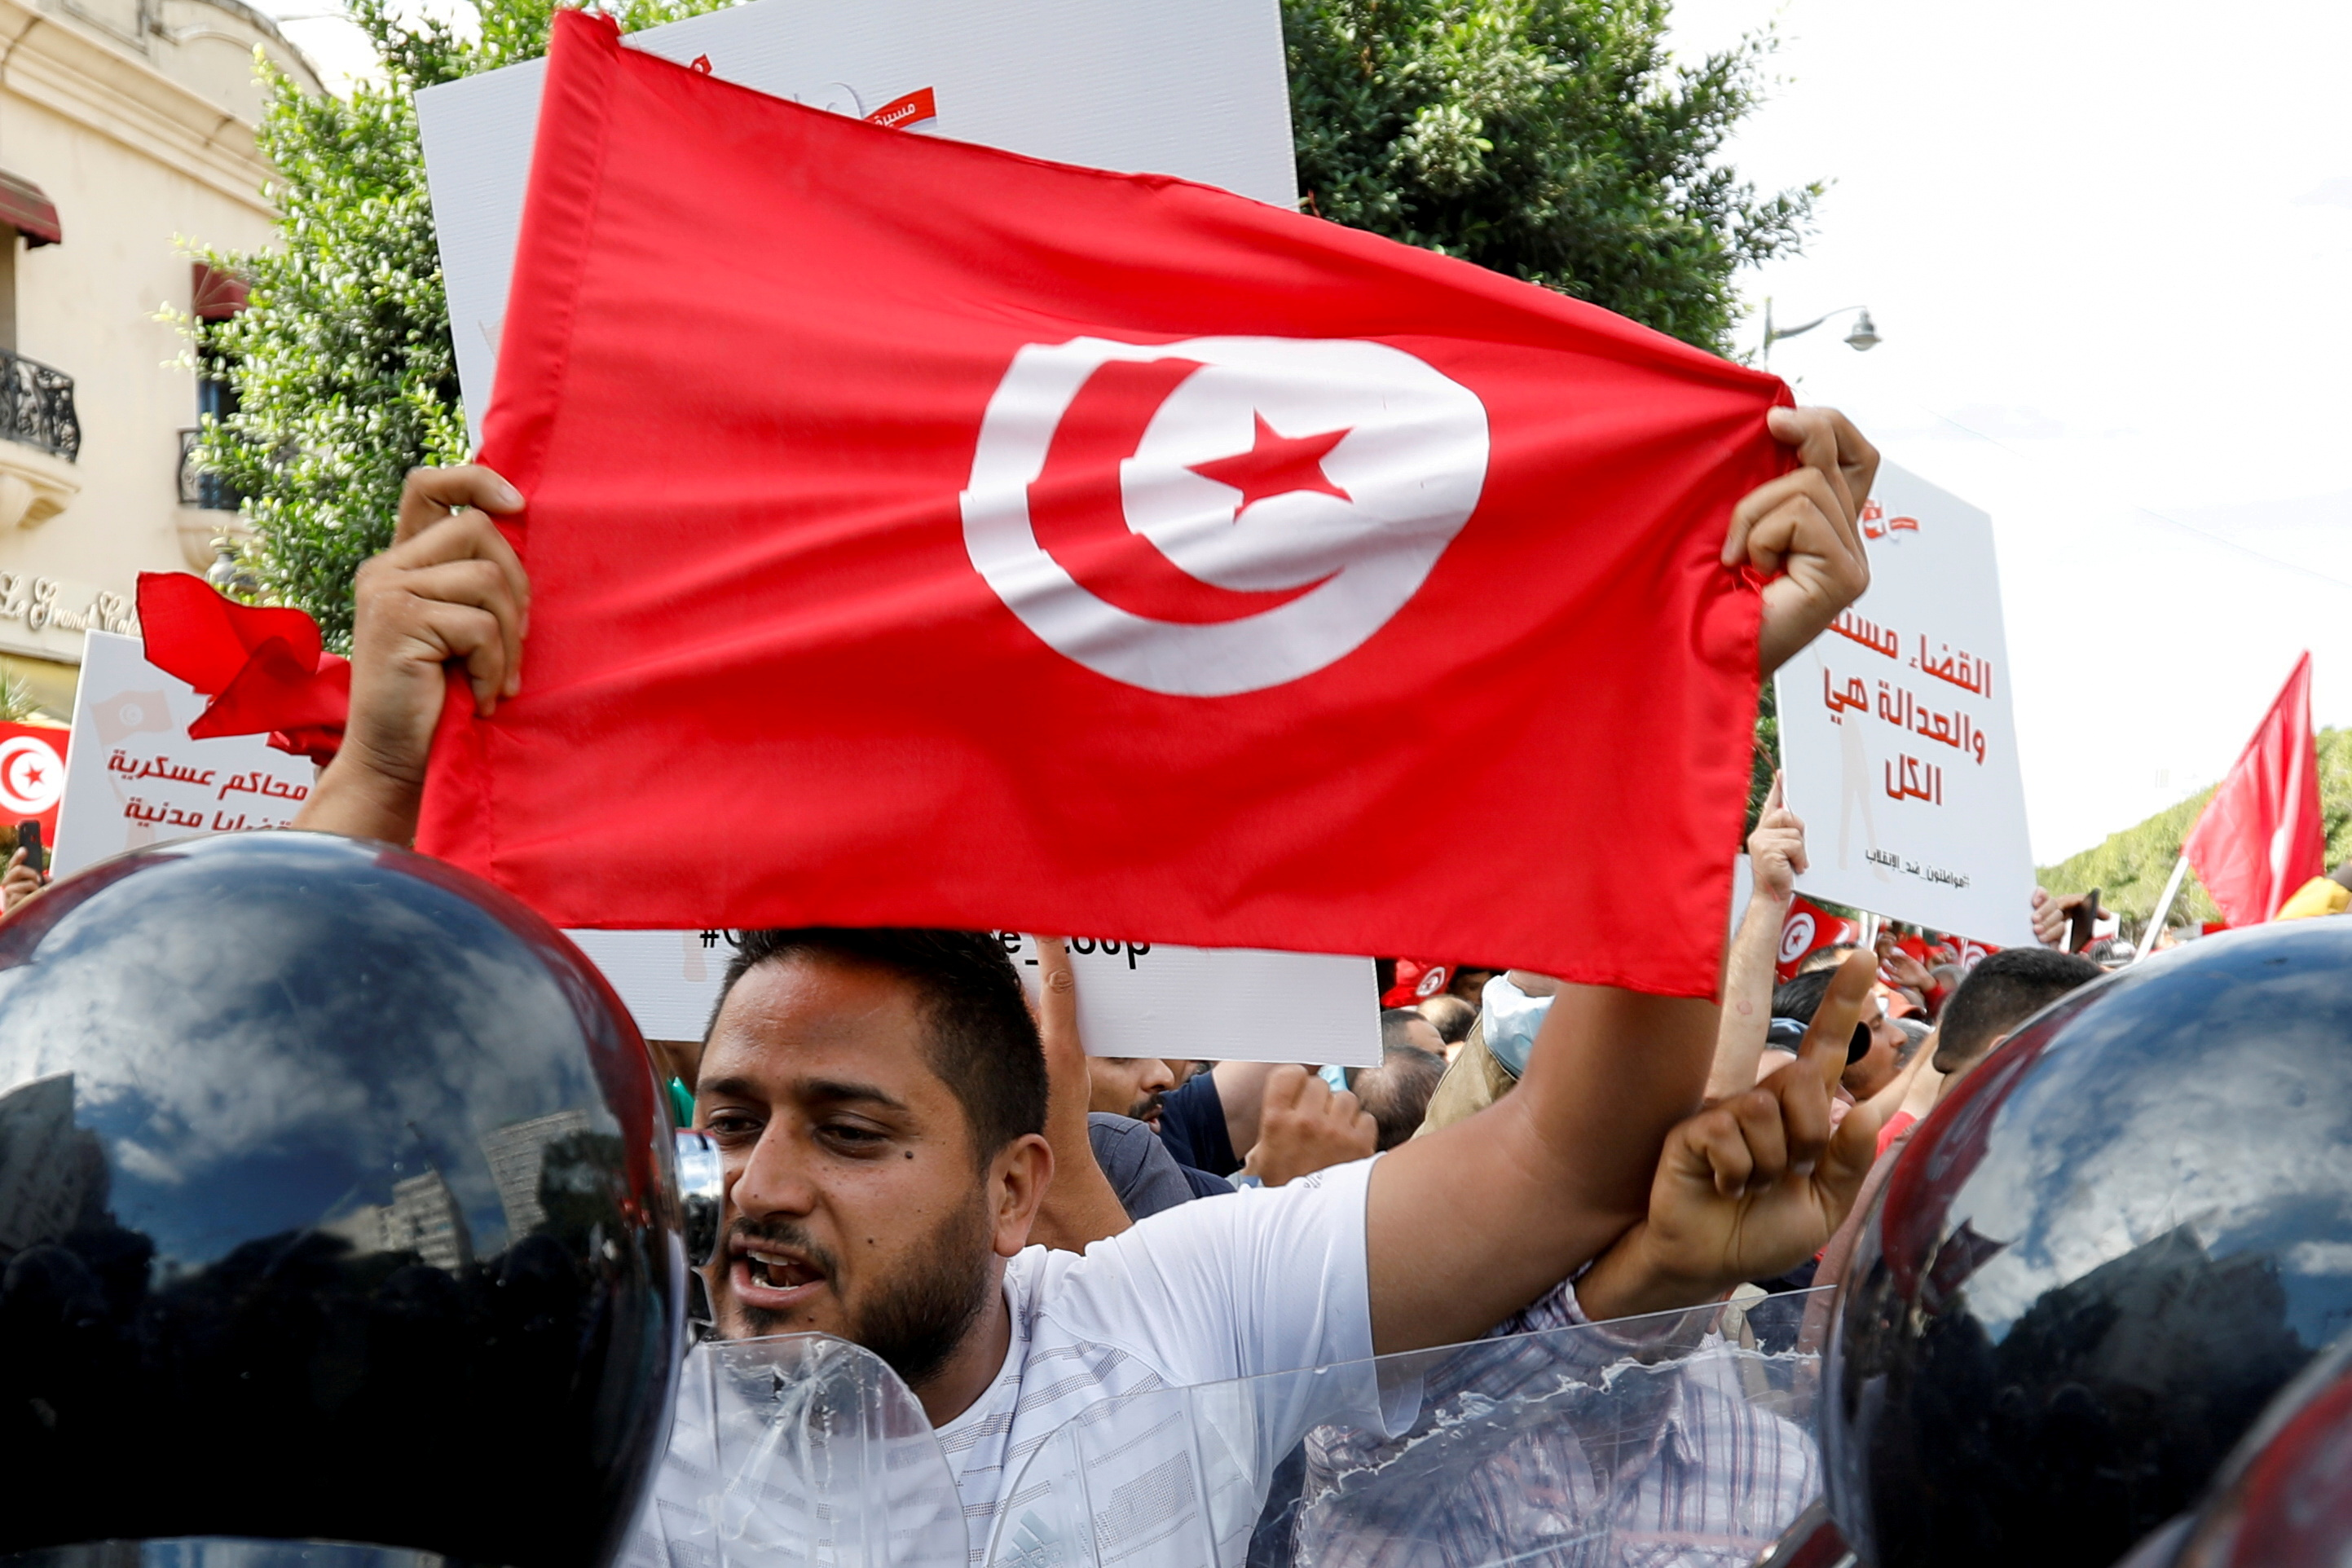 A demonstrator carries a Tunisian flag as he speaks with police during a protest against Tunisian President Kais Saied's seizure of governing powers, in Tunis, Tunisia, October 10, 2021. REUTERS/Zoubeir Souissi